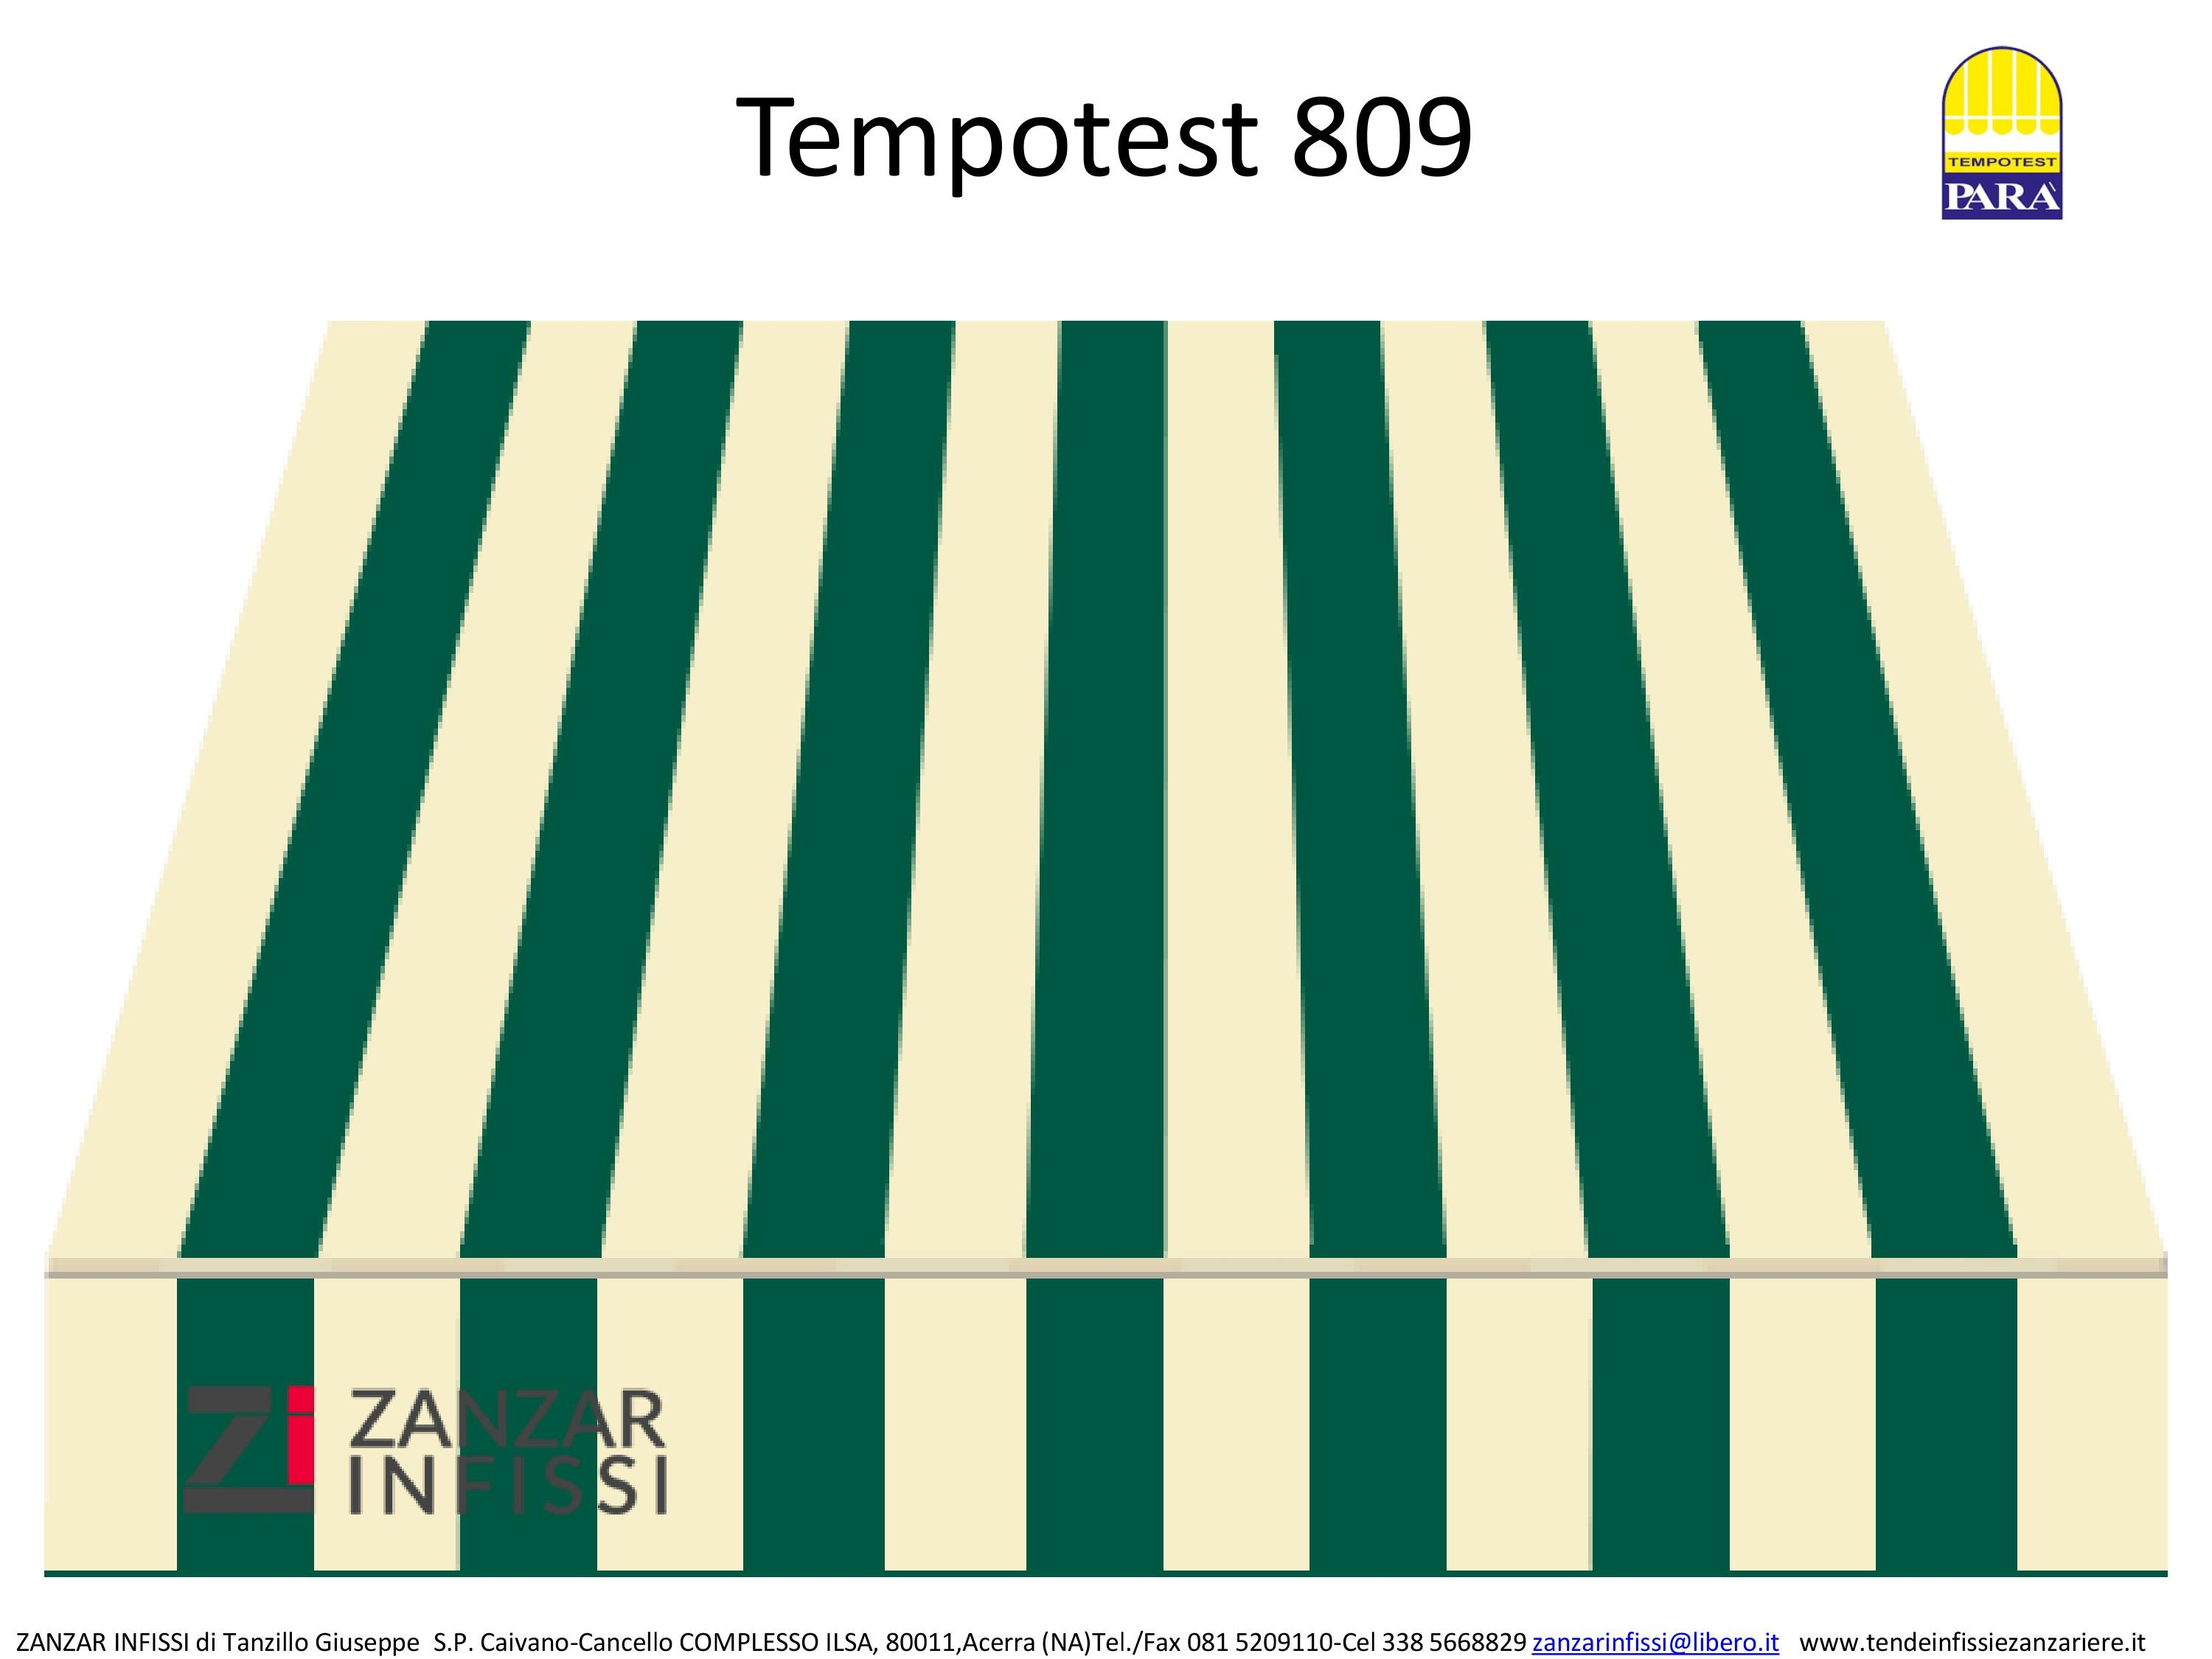 Tempotest 809